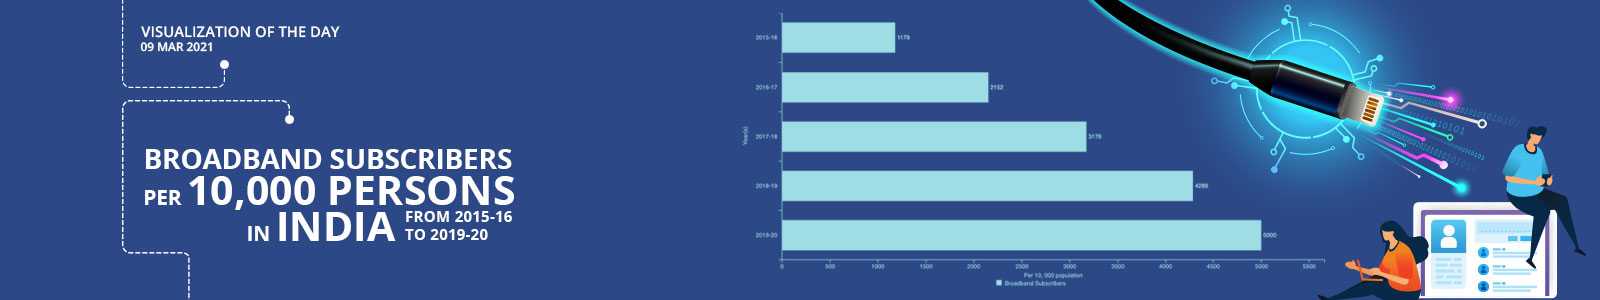 Broadband Subscribers per 10,000 Persons in India from 2015-16 to 2019-20